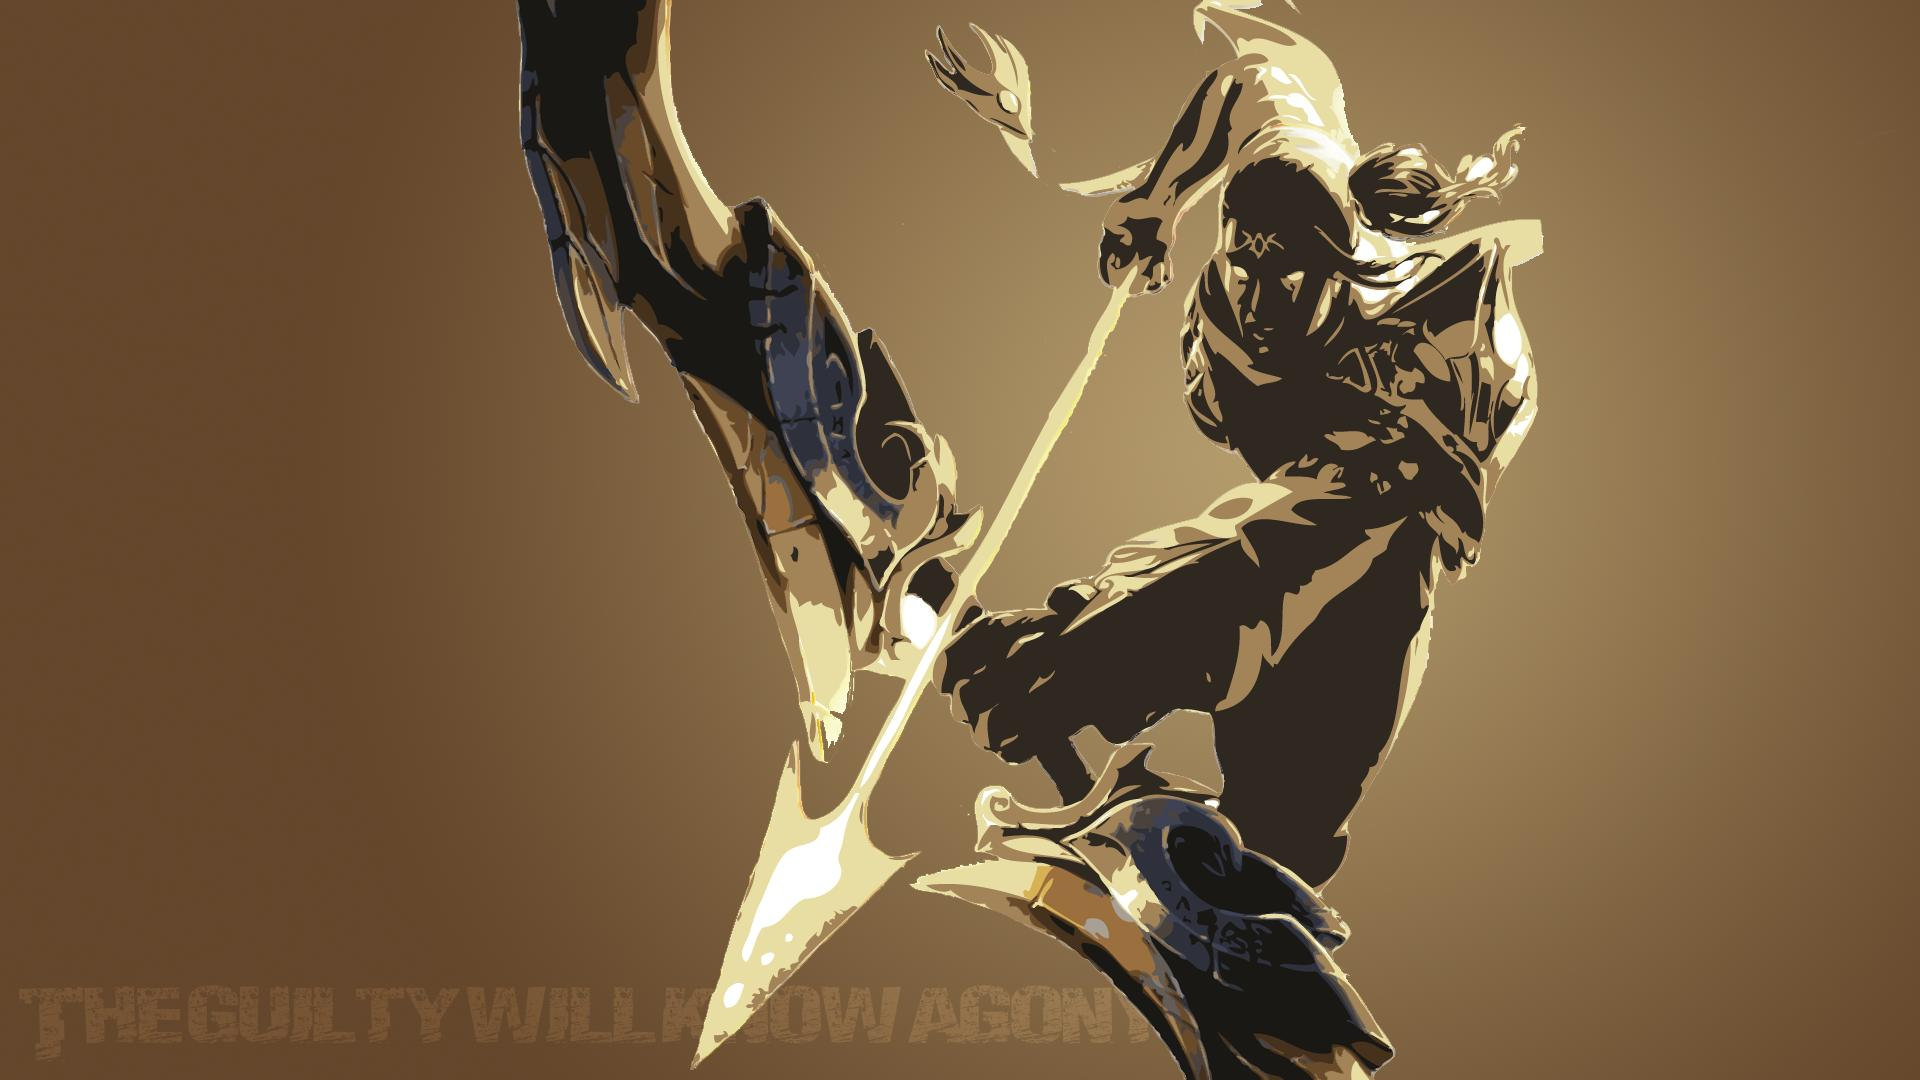 Arclight Varus Minimalistic wallpaper